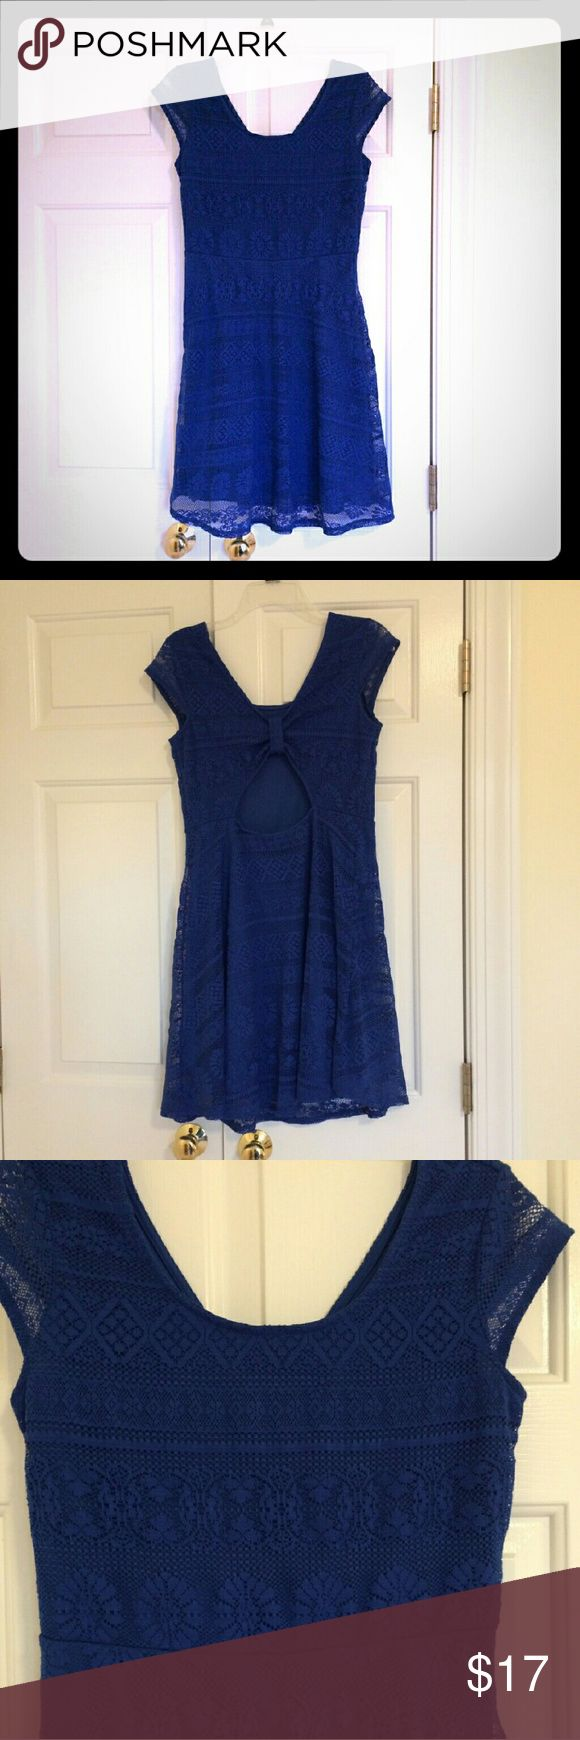 Cute Blue Dress Royal Blue with a cute cut out in the back and a scoop neckline Xhilaration Dresses Mini